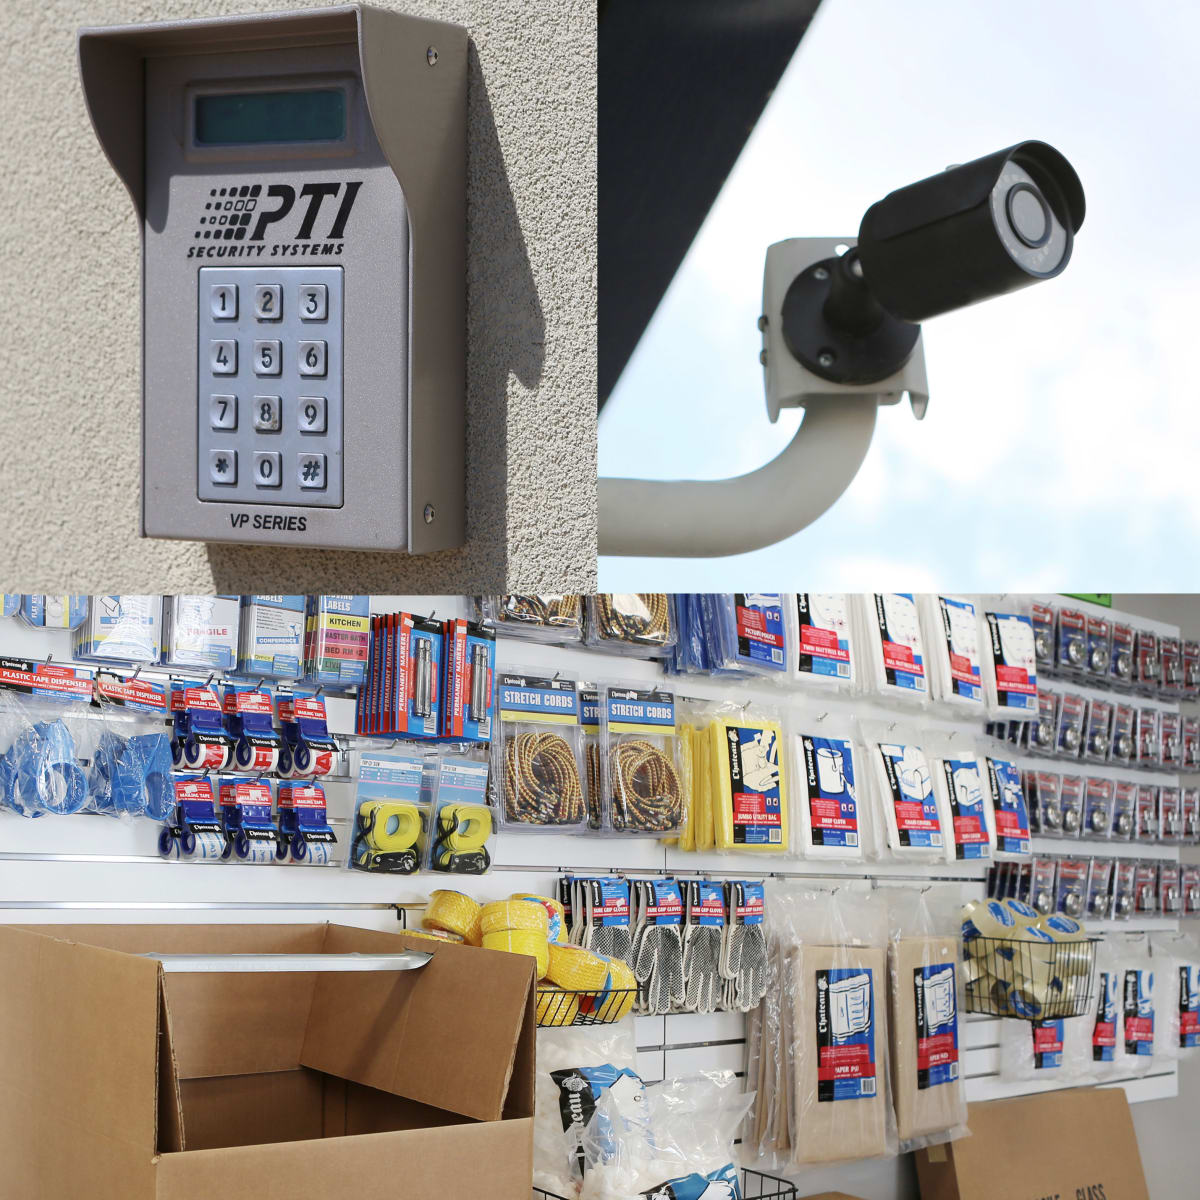 We provide 24 hour security monitoring and sell various moving and packing supplies at Midgard Self Storage in Key West, Florida